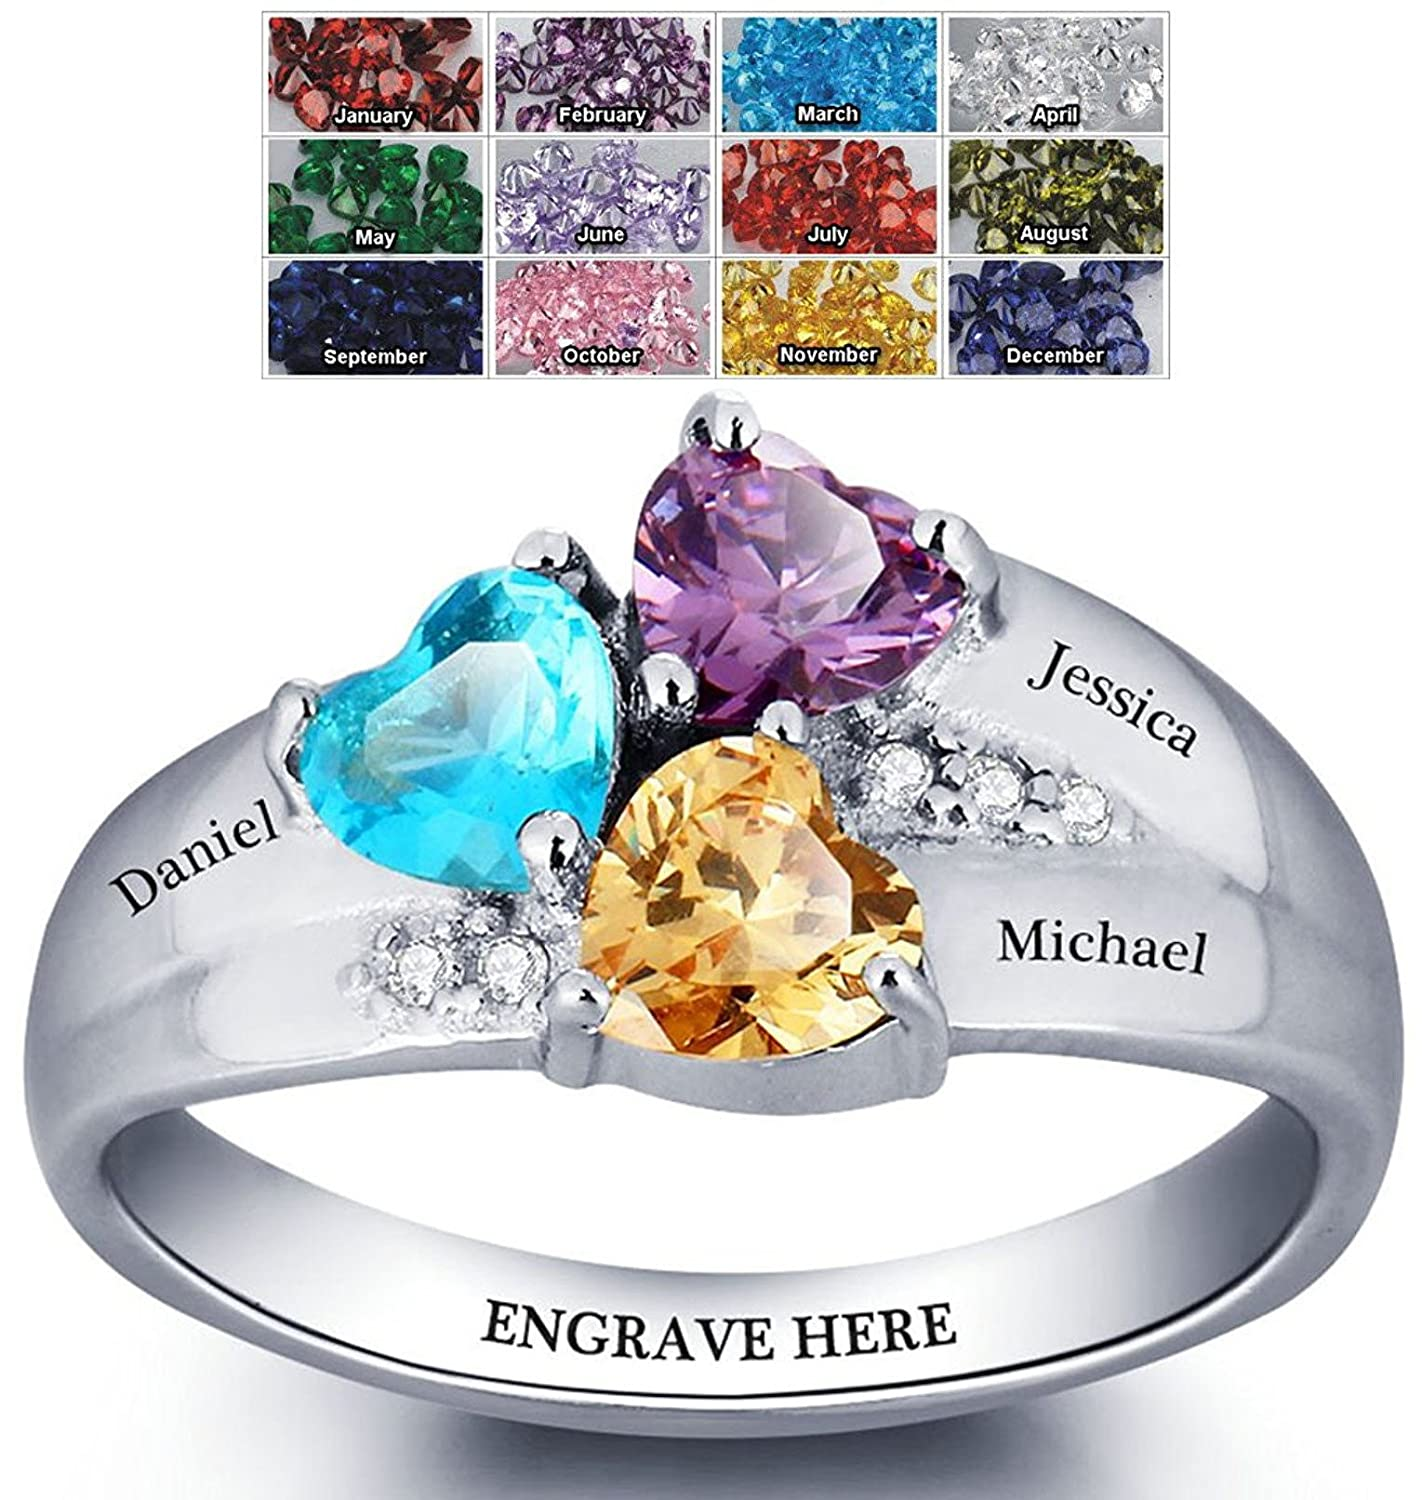 names name pinterest rings pregnancy best are baby with on melissargolden that refined elegant meanings and images posh